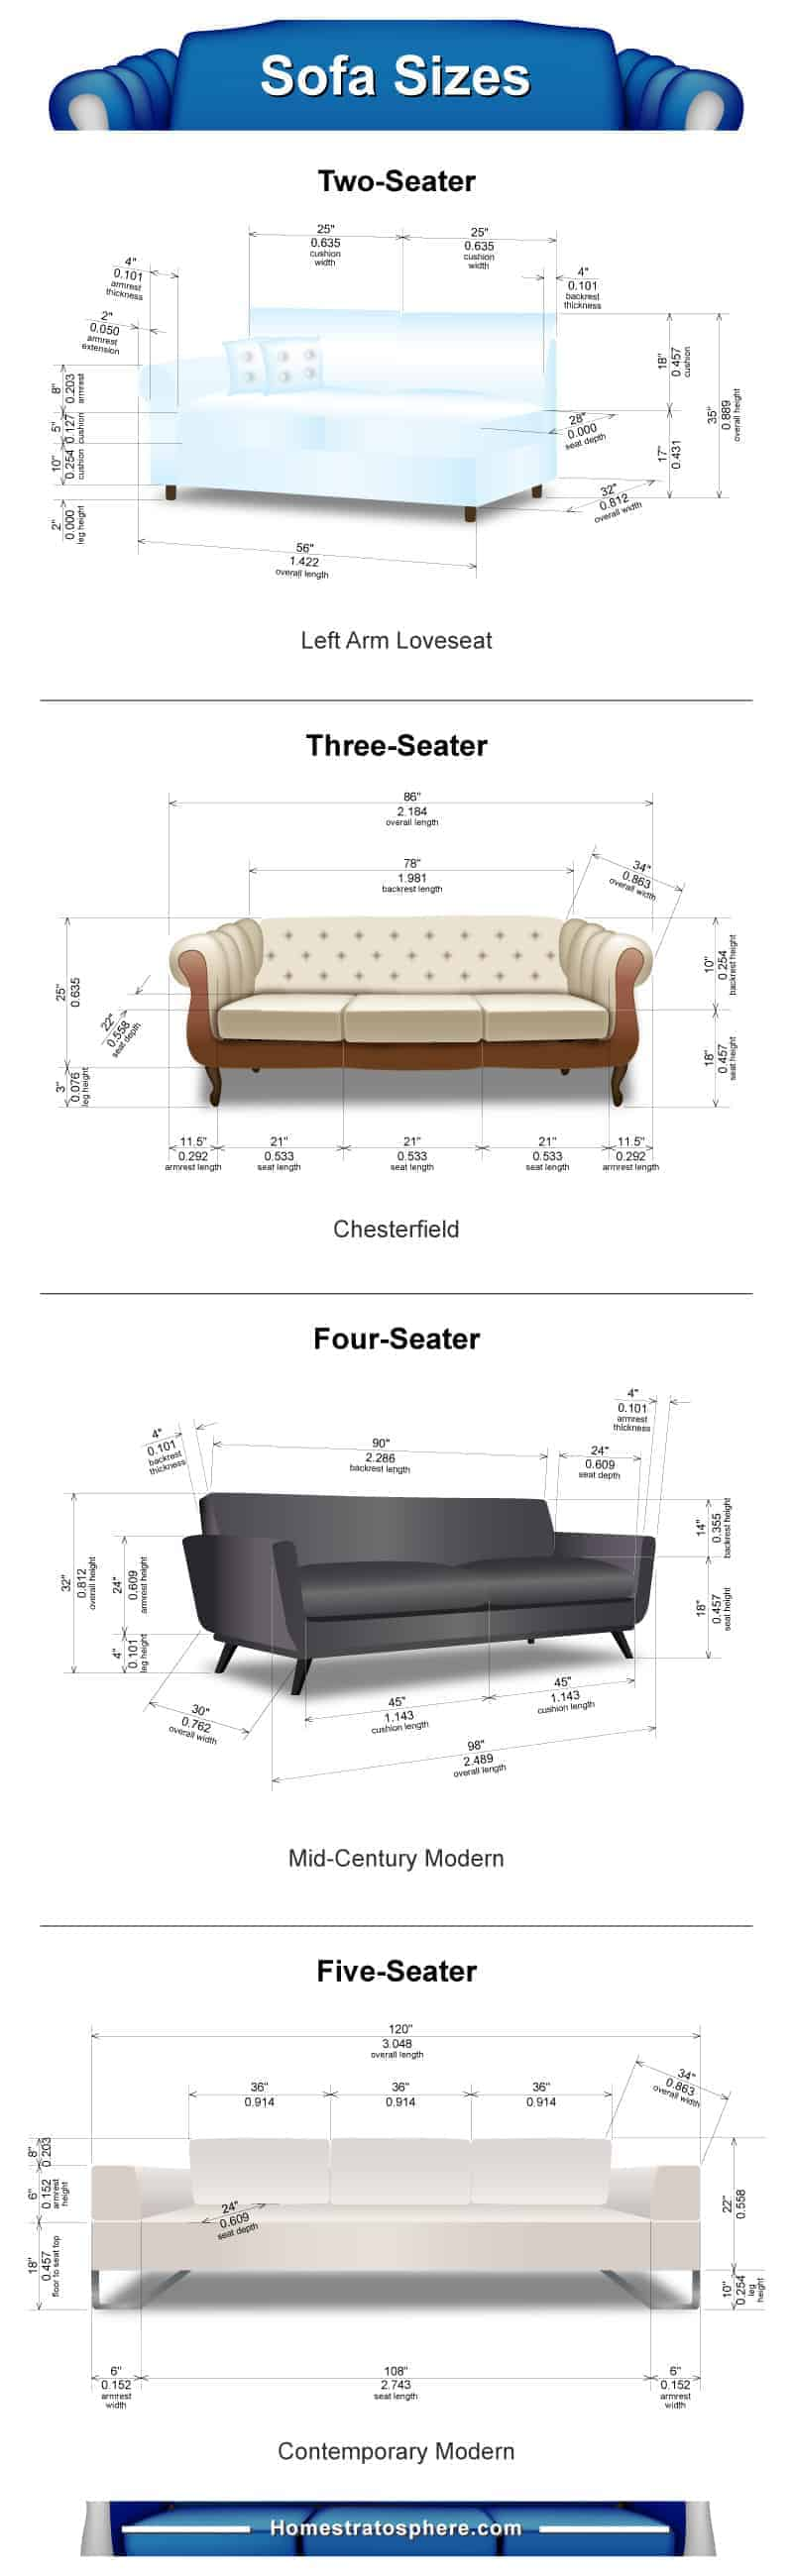 hight resolution of diagrams showing the proper couch dimensions according to the number of people it seats